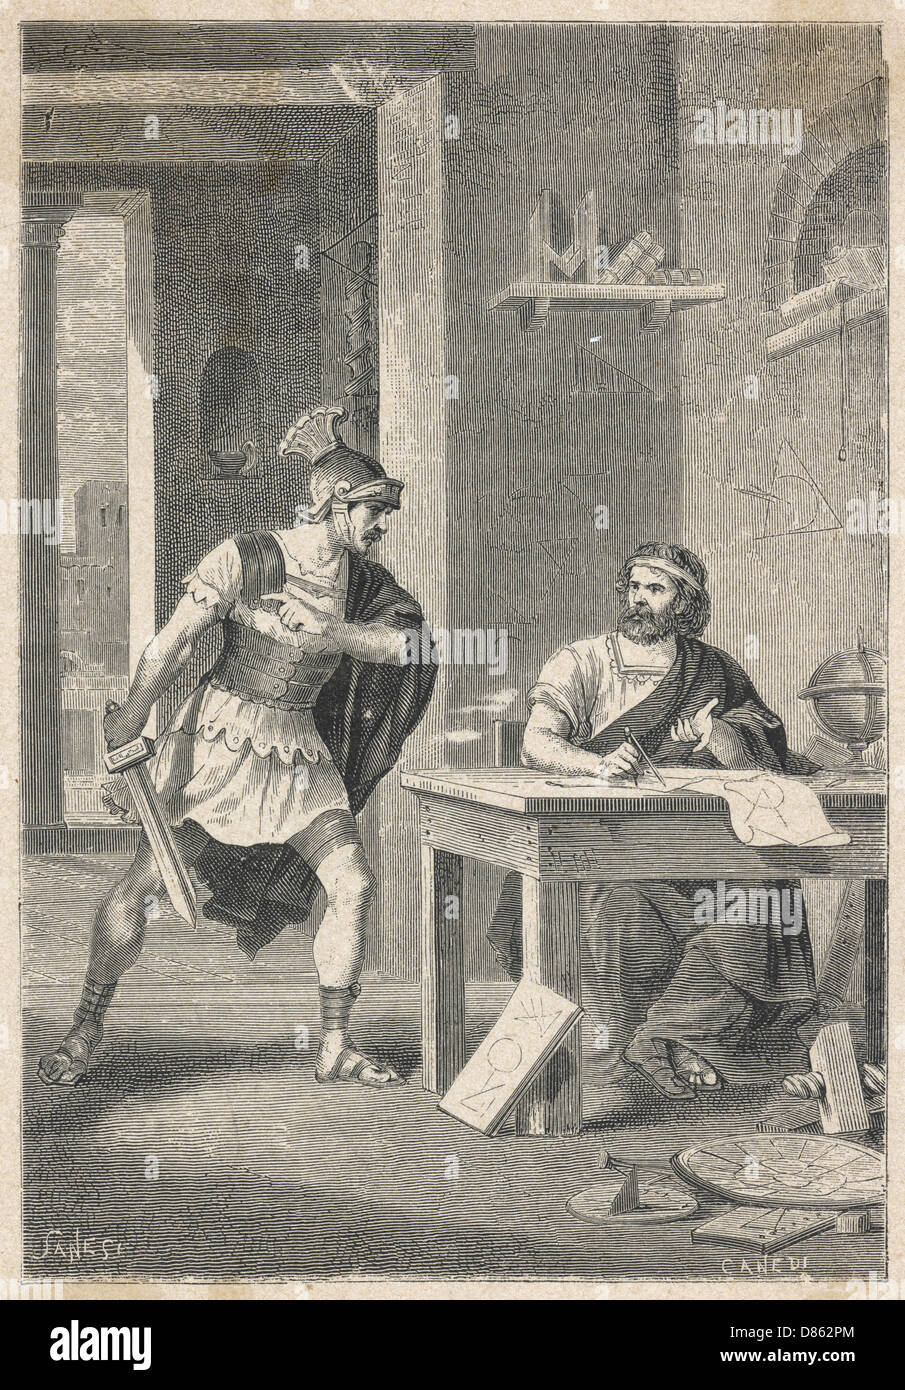 Archimedes Killed By A Roman Soldier - Stock Image